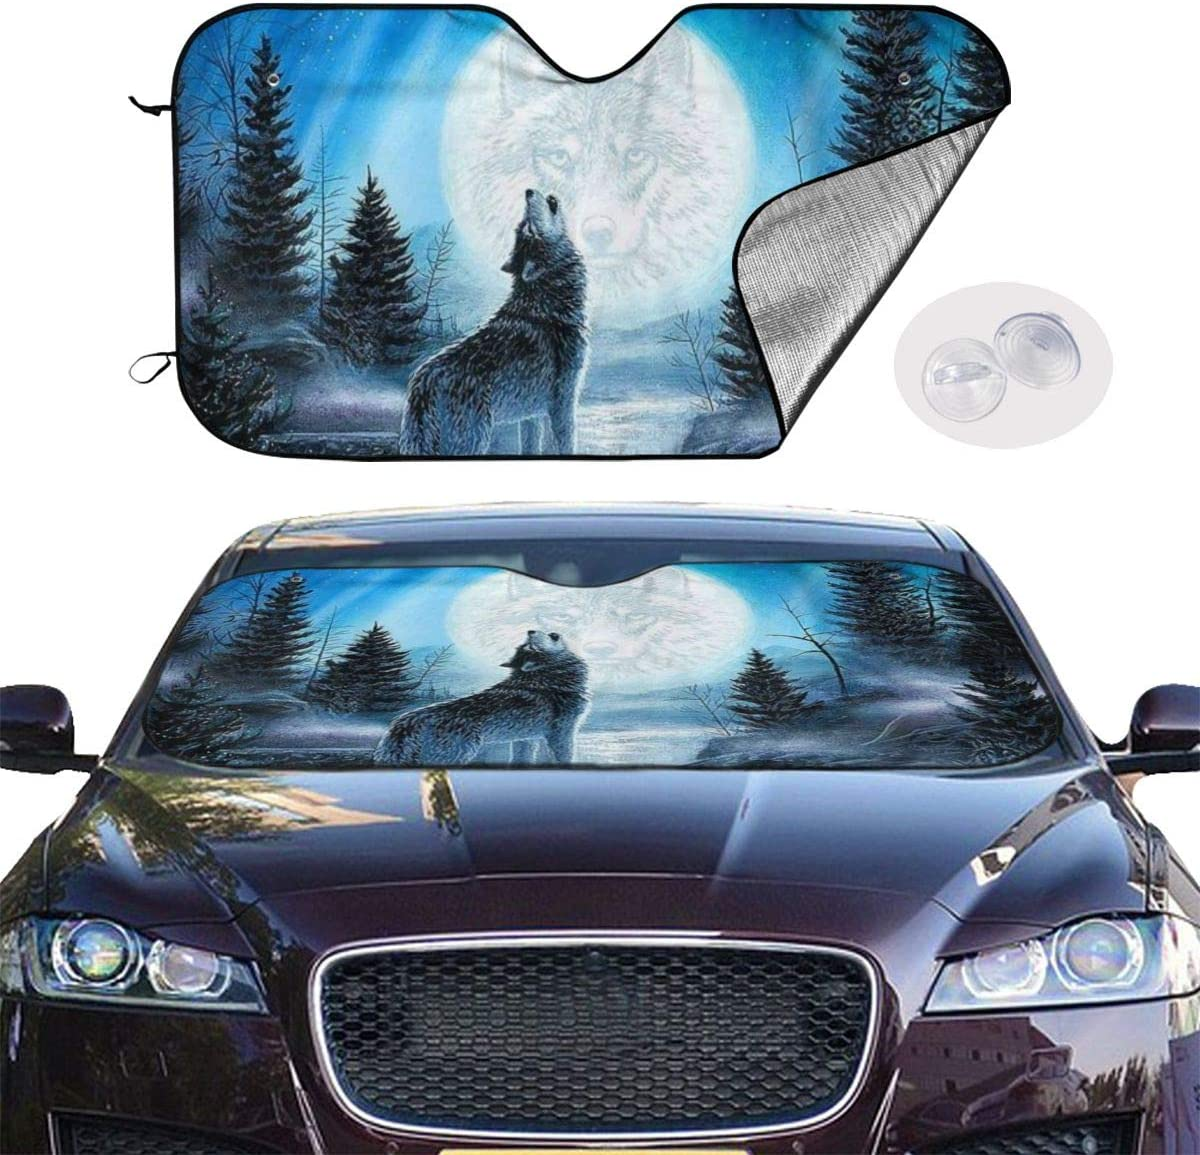 Size 51x27.5 Inch Resentment of The Wolf Auto Front Windshield Sun Shade Car Window Foldable Sunshade Cover Uv Rays Sun Visor Protector and Keeps Your Vehicle Cool